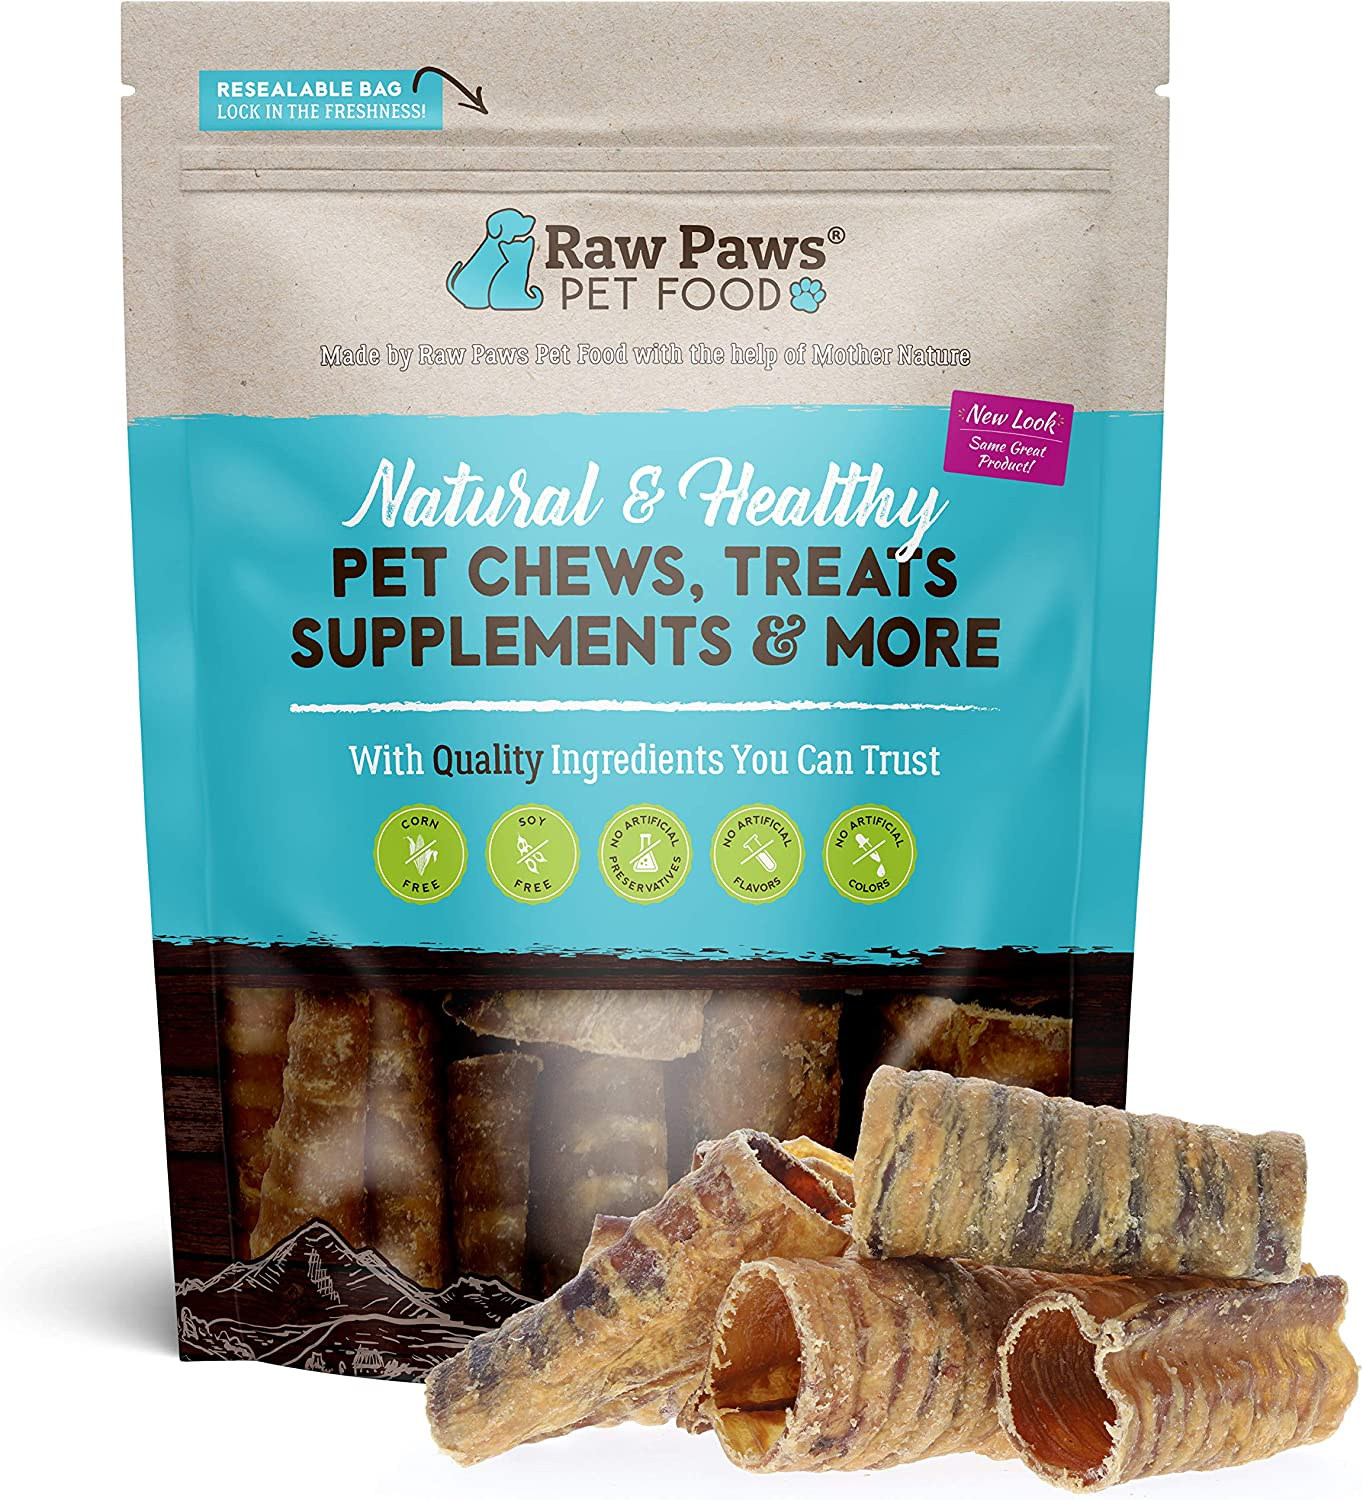 Raw Paws 3-inch Beef Trachea Dog Chews, 10 Pack - Packed in USA - Dehydrated Beef Trachea for Dogs from Free-Range, Grass-Fed Cows - Trachea Dog Treats are a Healthy Rawhide Alternative for Dogs